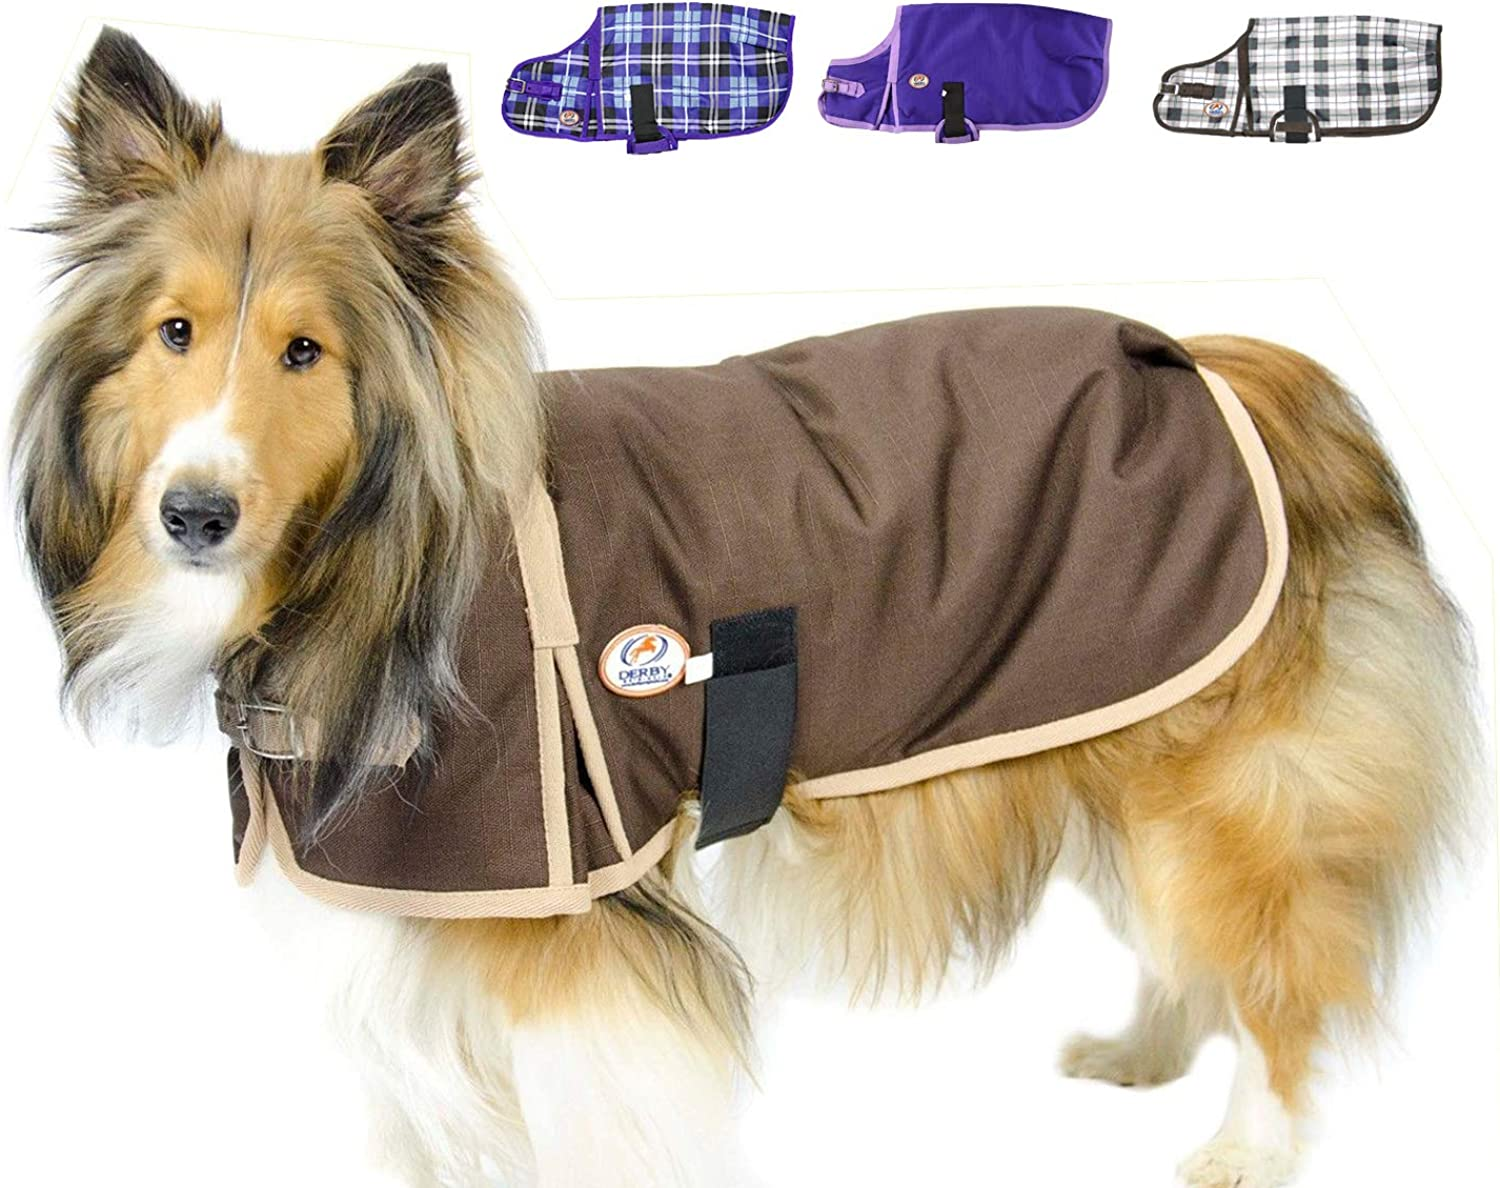 Derby Originals 1200D Heavy Duty Waterproof Dog Coat with 2 year limited warranty, Chocolate, XLarge